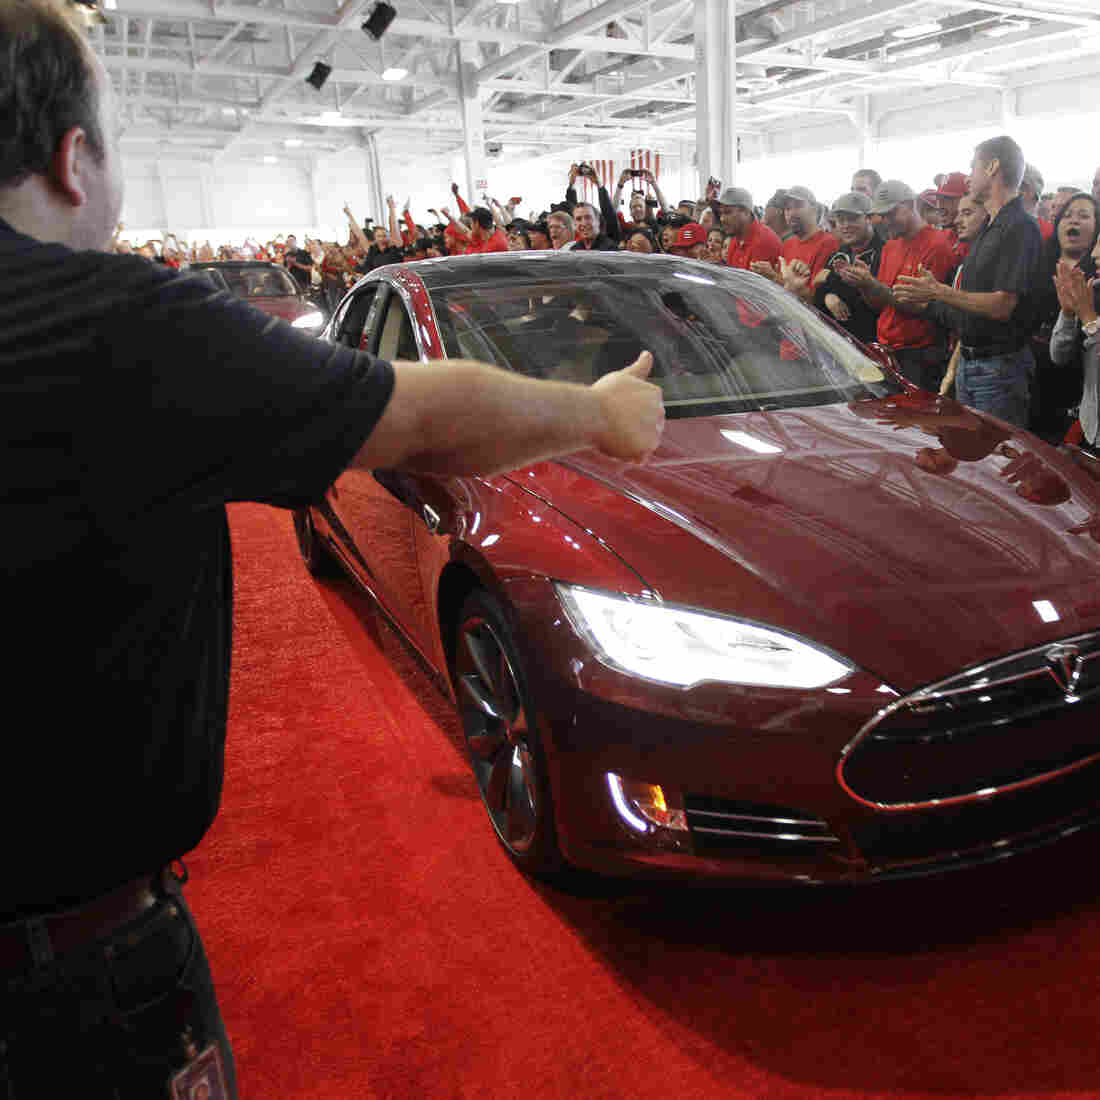 Tesla workers cheer on one of the first Tesla Model S cars sold, during a rally at the Tesla factory in Fremont, Calif., in June. The company is now unveiling a new network of refueling stations for the vehicles.